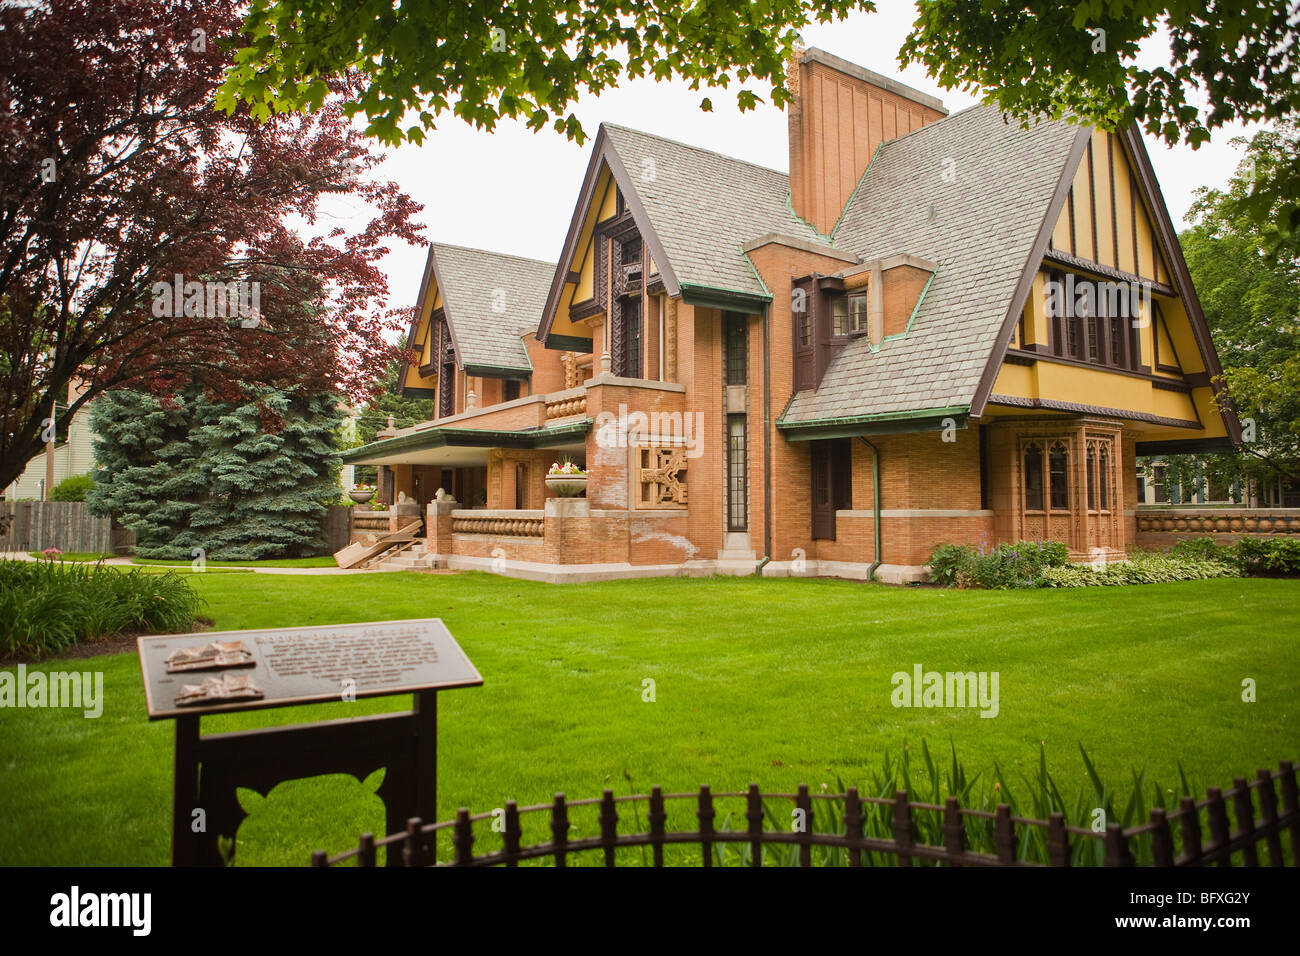 Nathan G. Moore House by architect Frank Lloyd Wright, Frank Lloyd Wright Historic District, Oak Park, Illinois - Stock Image